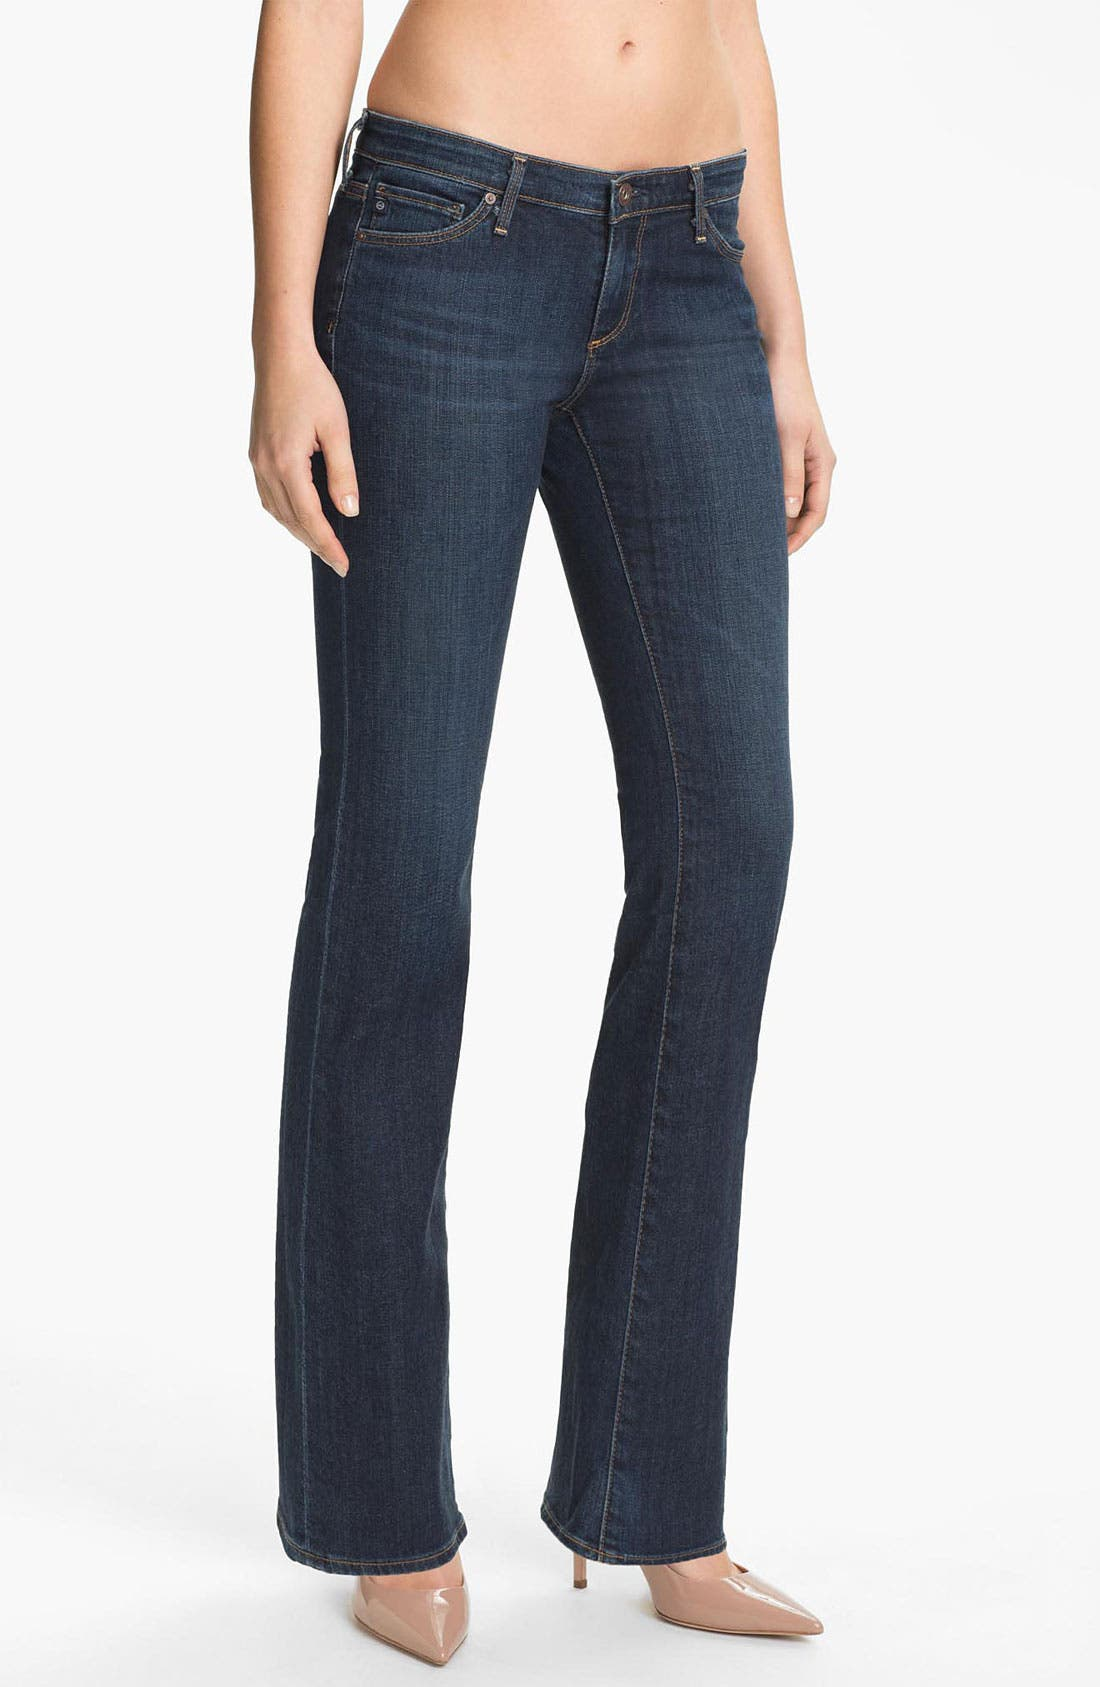 Main Image - AG Jeans 'Angelina' Bootcut Jeans (Blue Brush) (Petite)